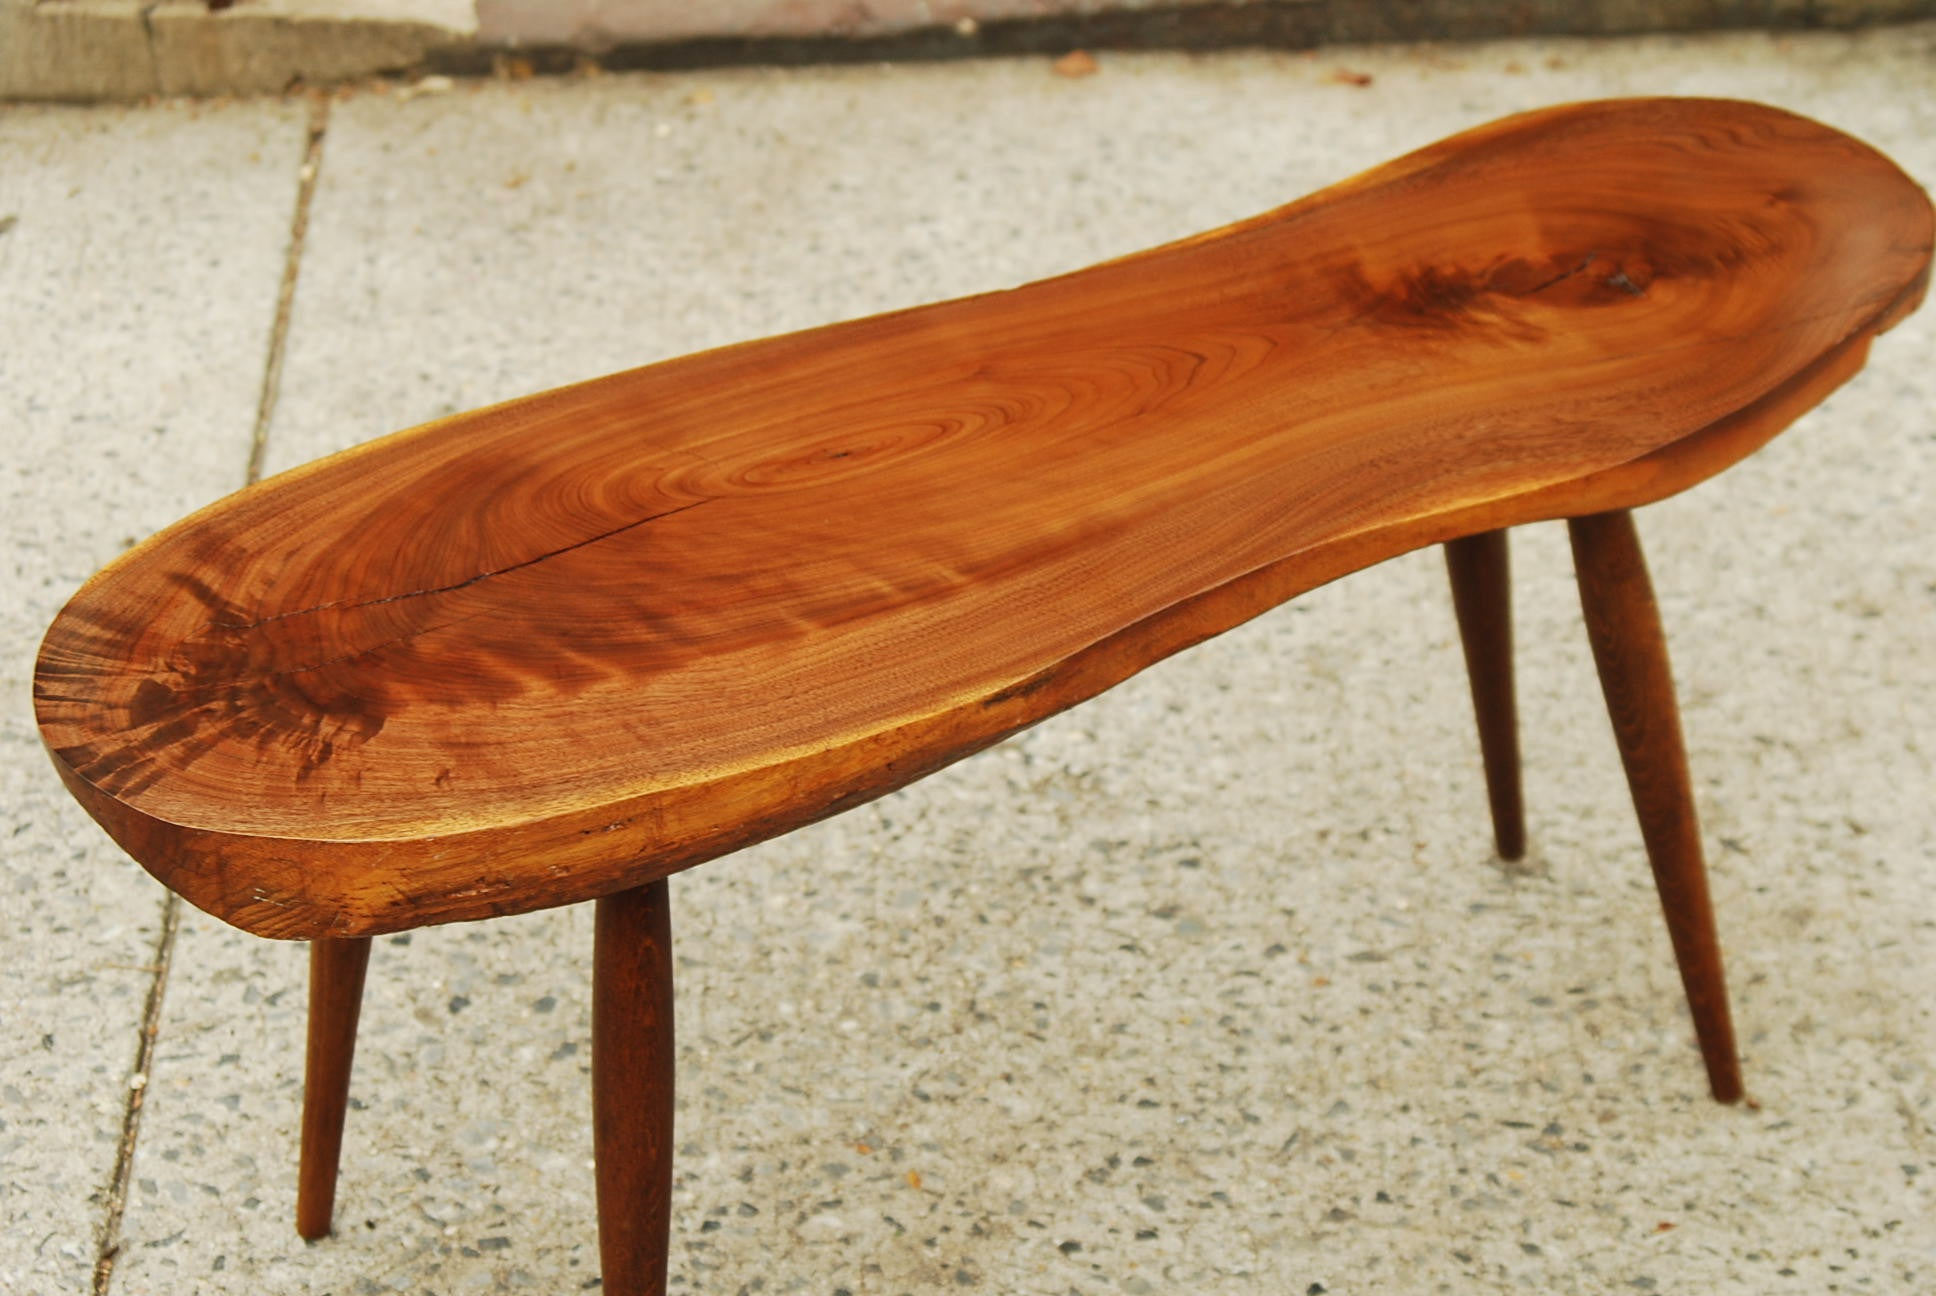 SOLD PACT AMORPHIC TREE SLAB COFFEE TABLE I Like Mikes Mid